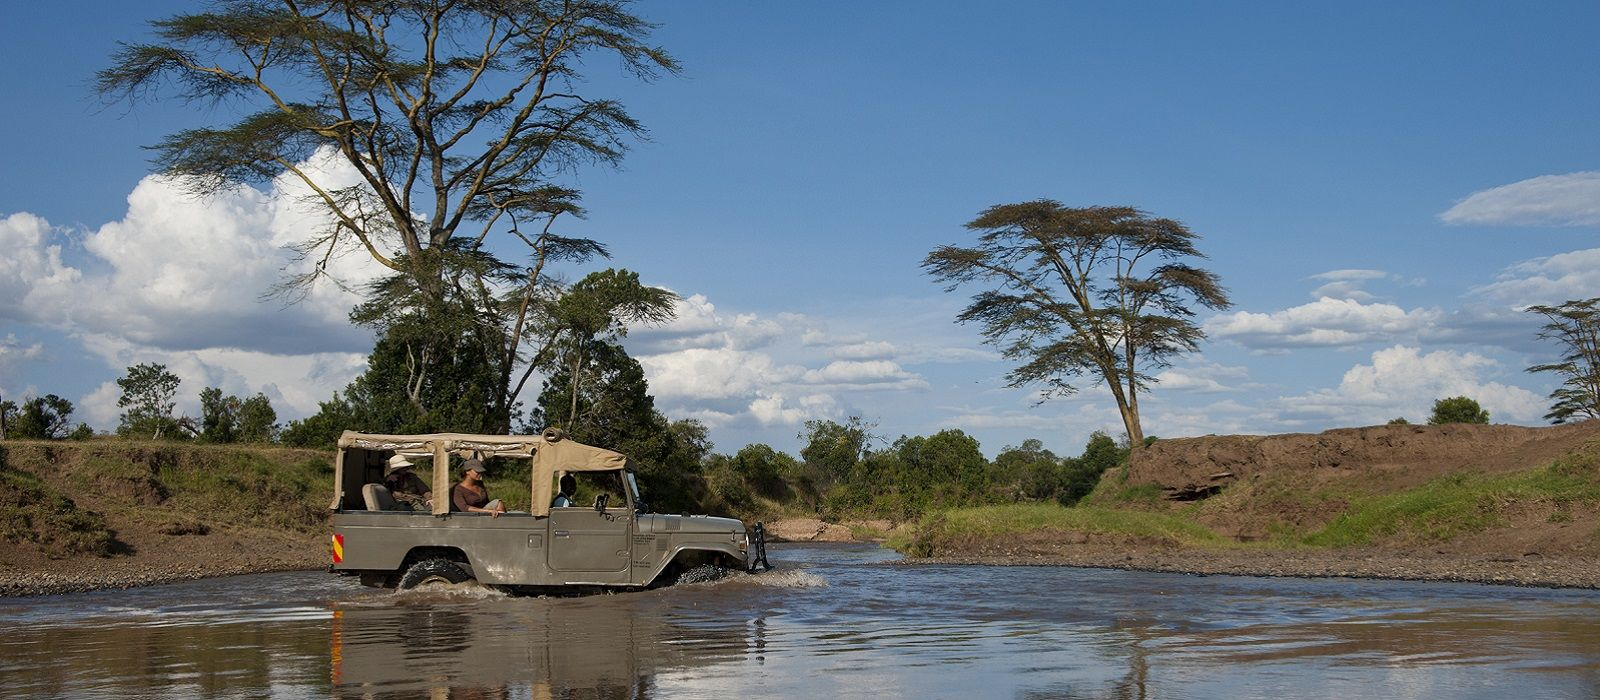 Safari Highlights of Kenya Tour Trip 2